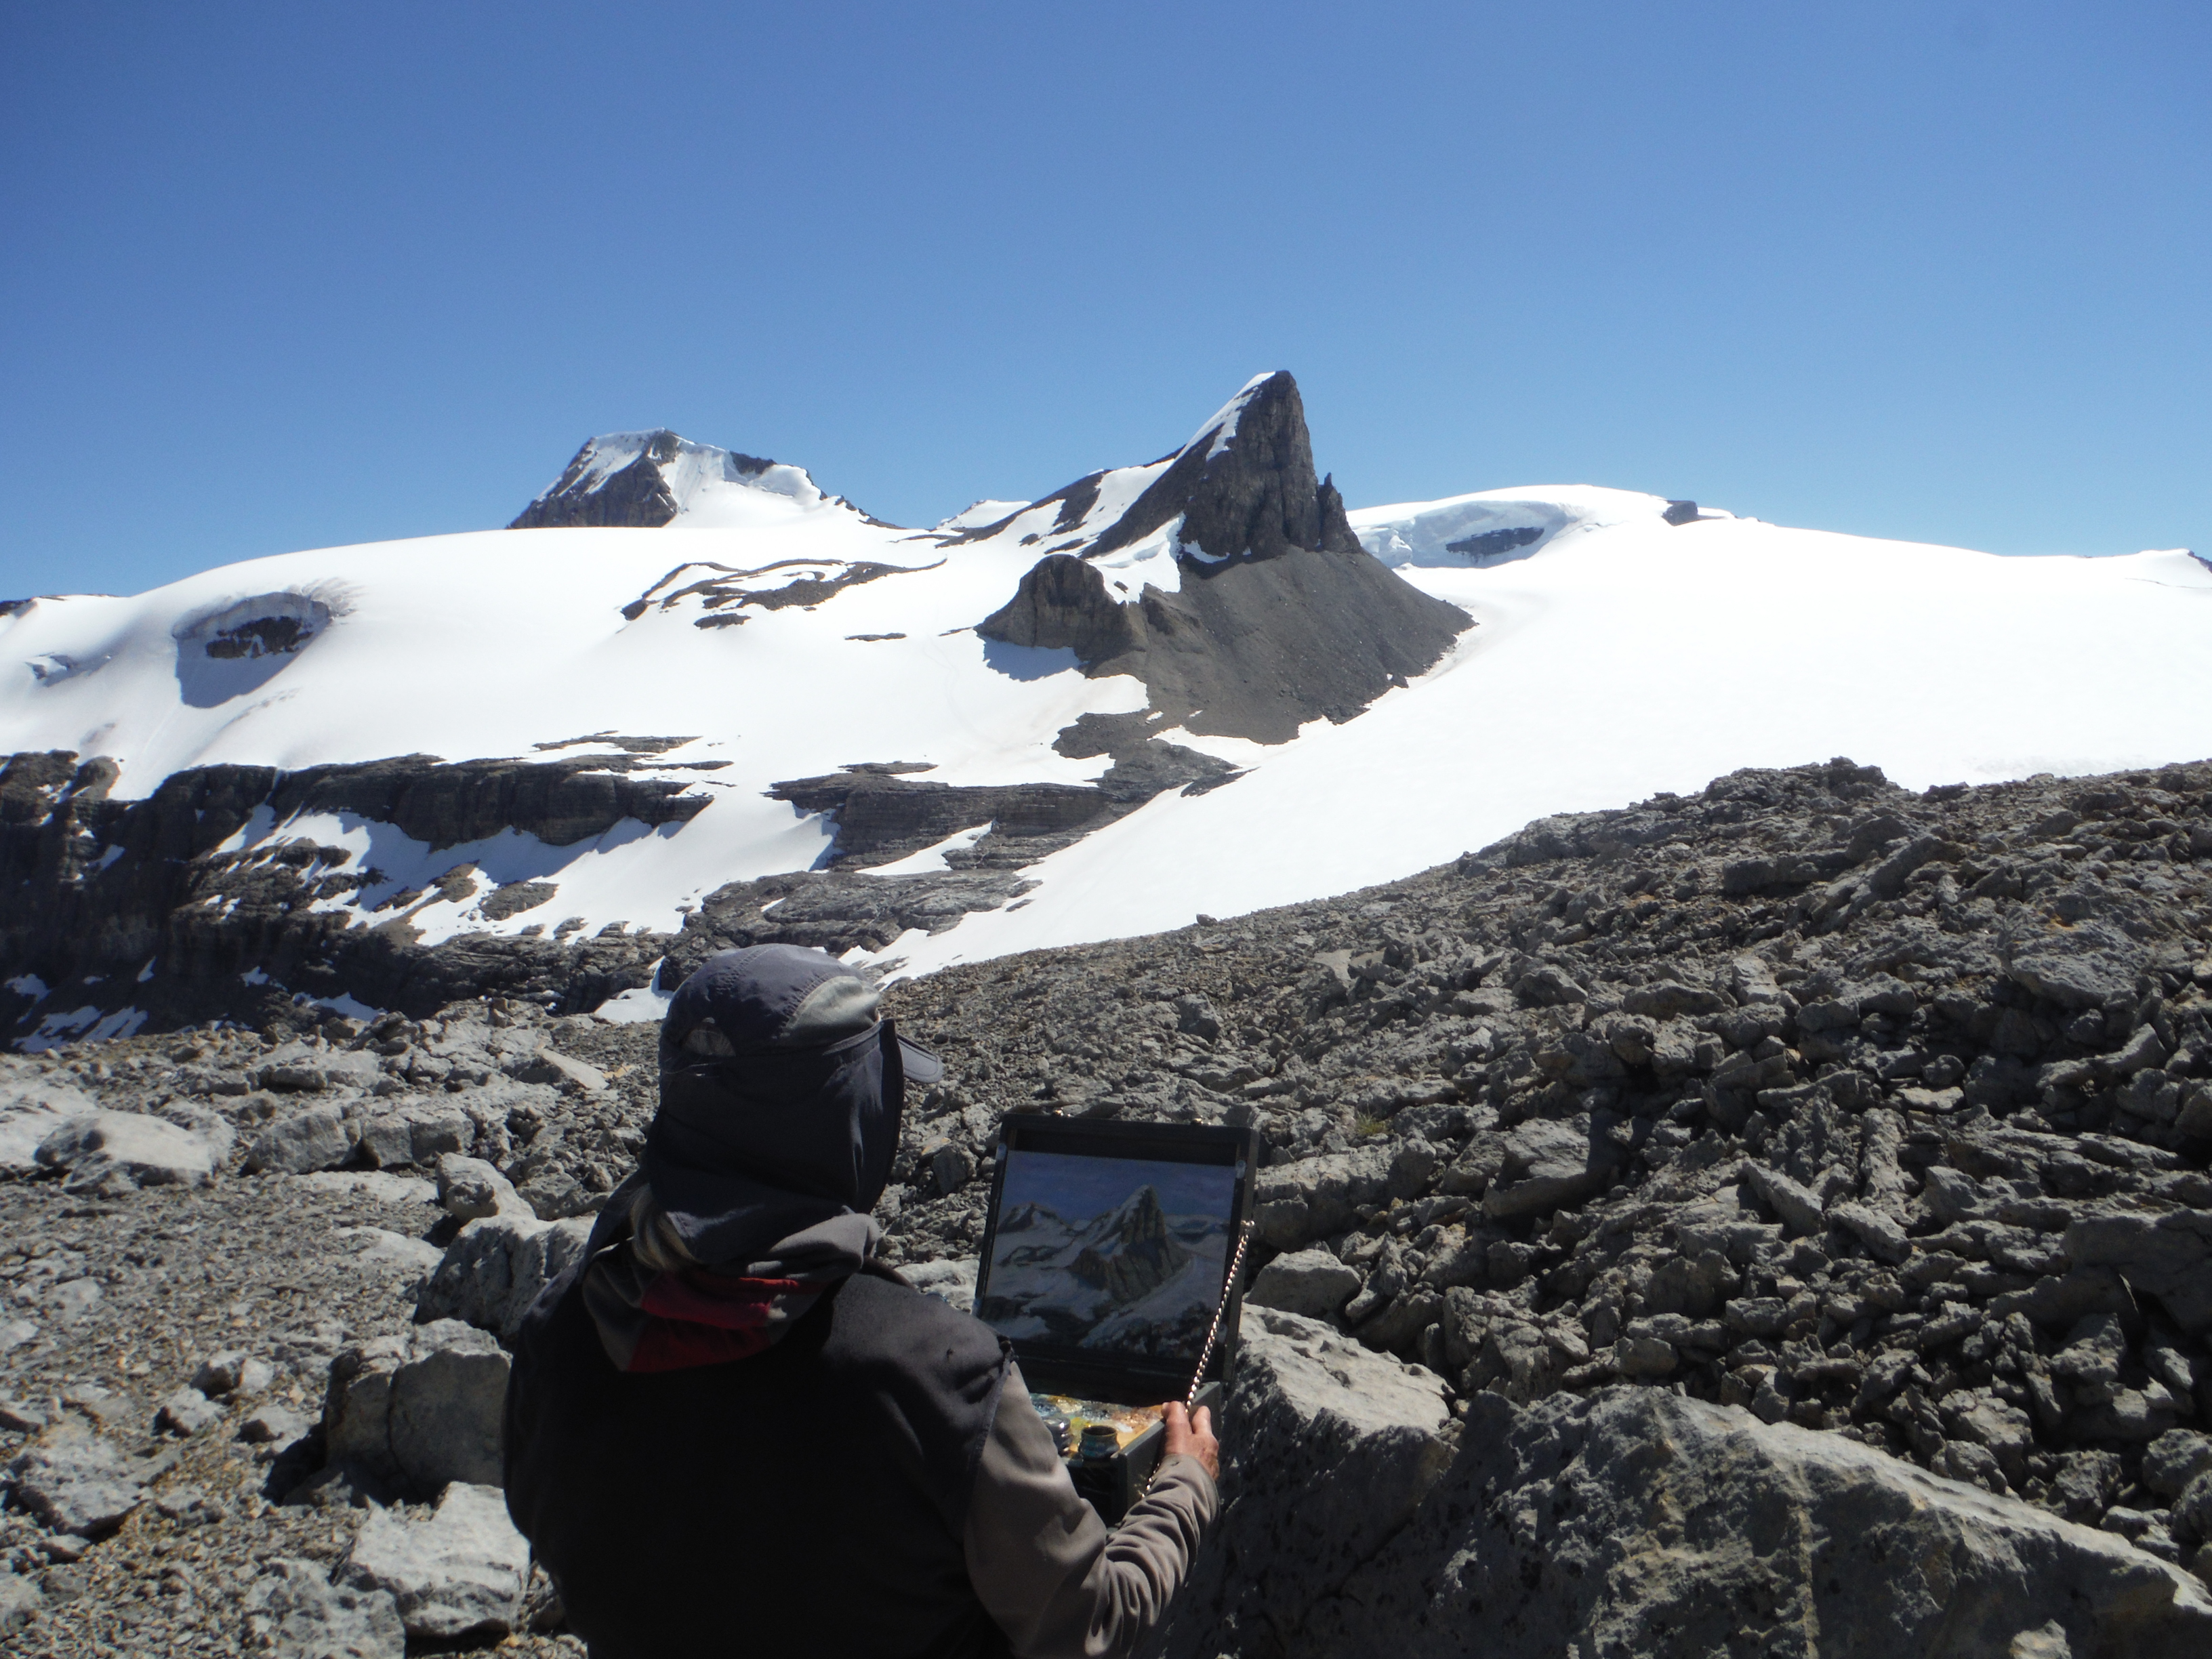 Plein Air Painting St. Nicholas Peak Mt. Olive Wapta Icefield The Onion